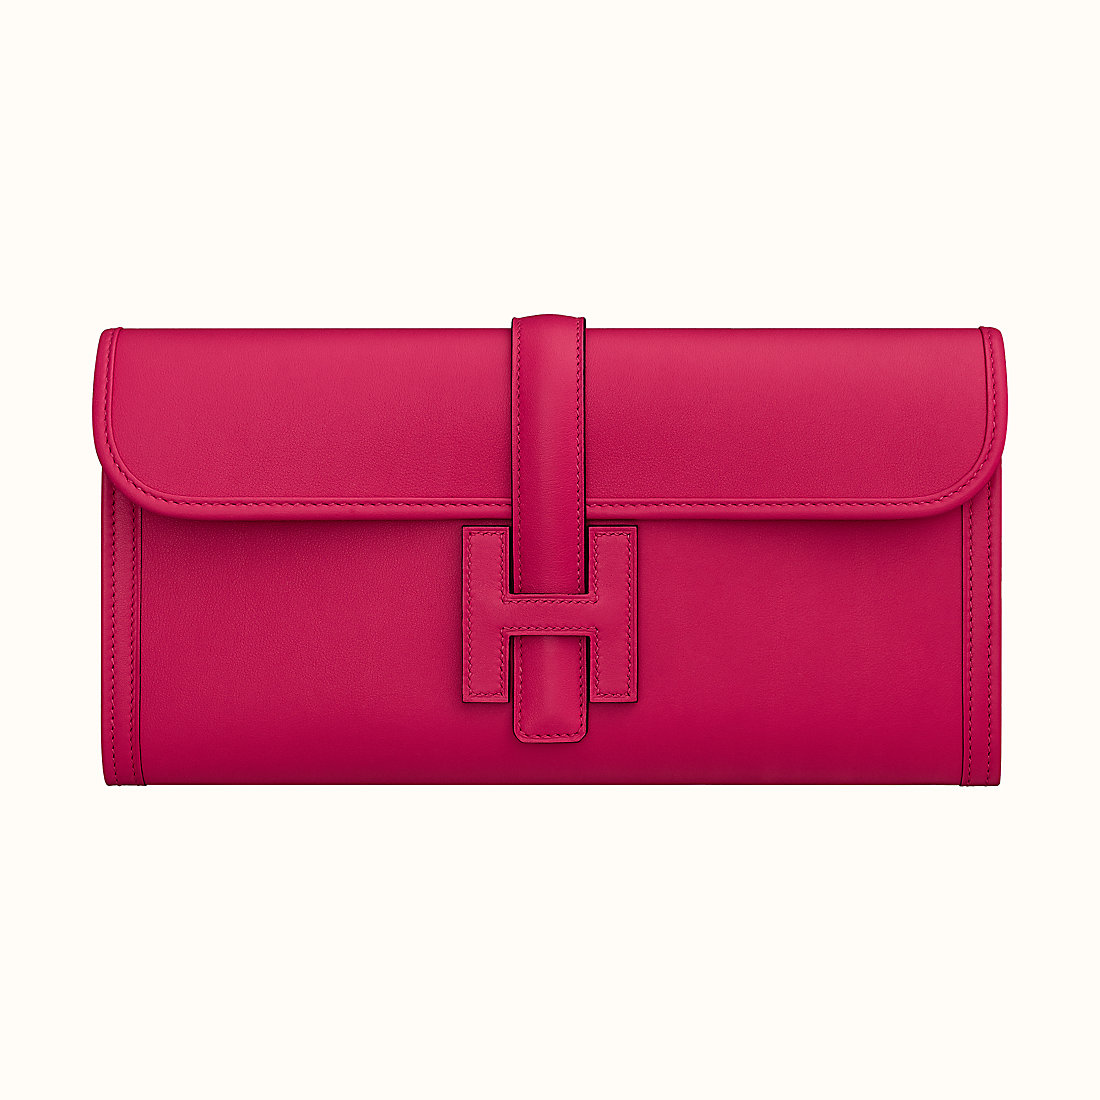 Macao Hermes Jige Elan 29 verso clutch Rose Mexico/Rouge Piment